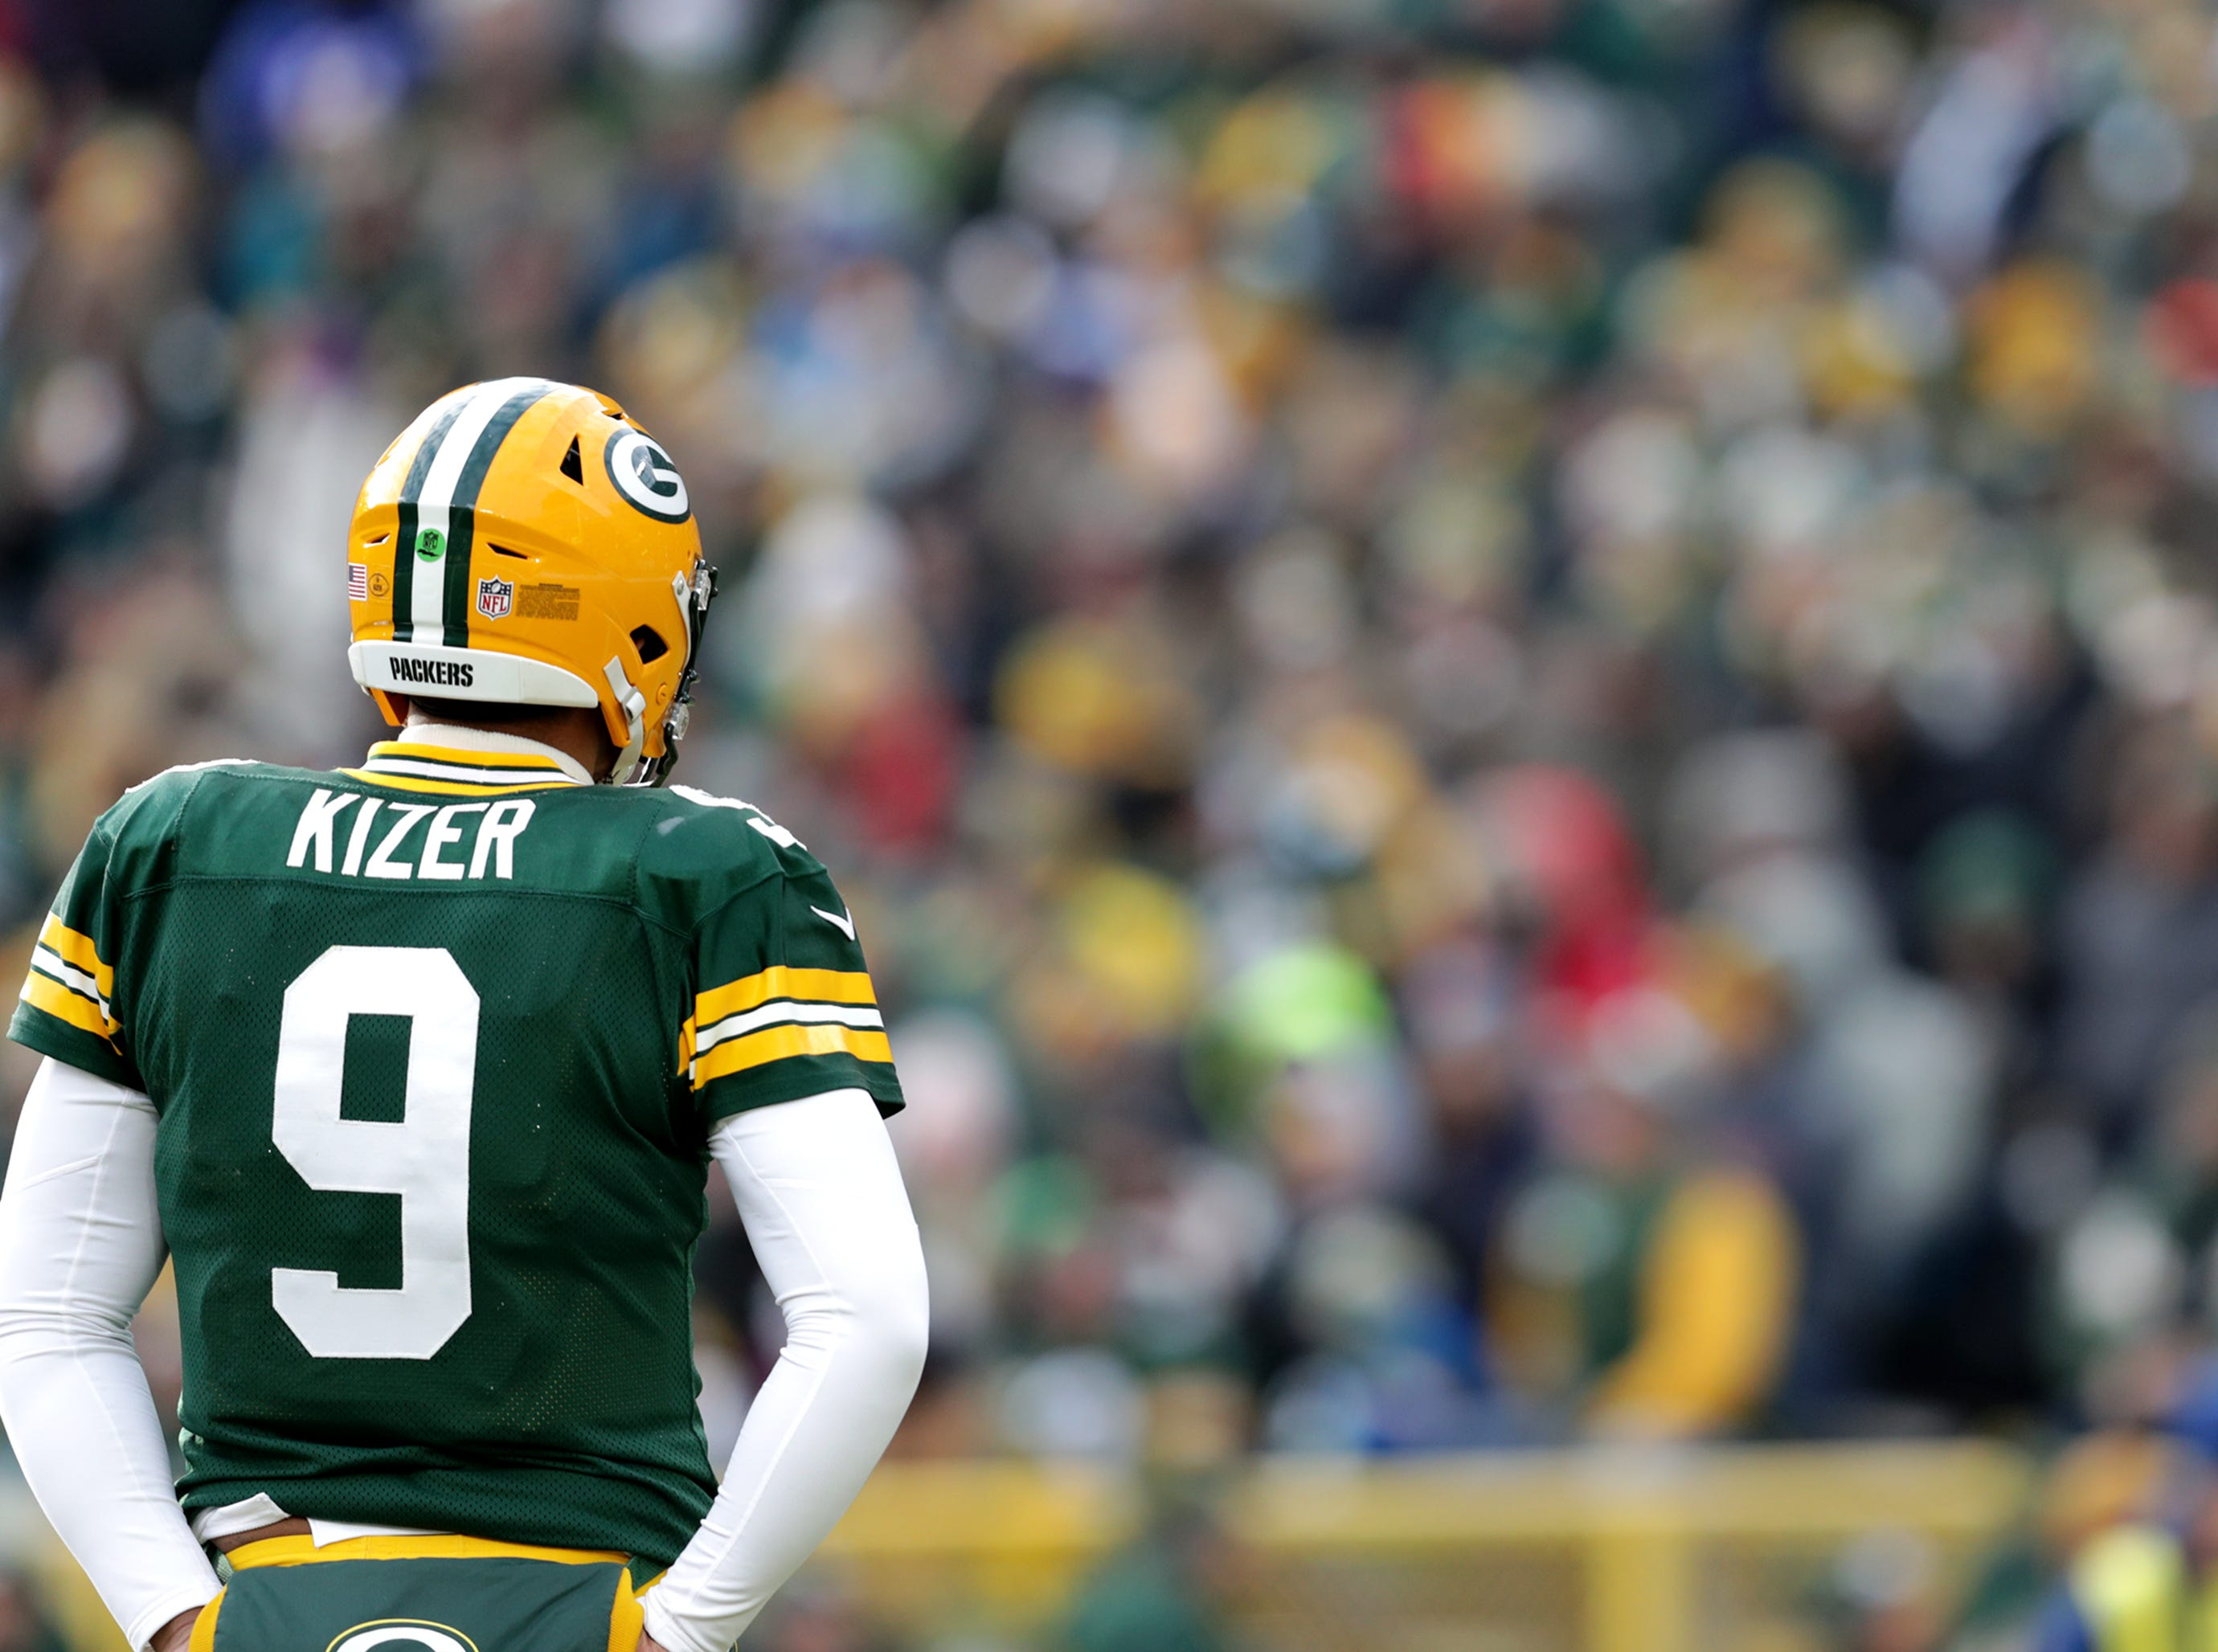 Green Bay Packers quarterback DeShone Kizer against the Detroit Lions during their football game on Sunday, December 30, 2018, at Lambeau Field in Green Bay, Wis. Detroit defeated Green Bay 31 to 0 Wm. Glasheen/USA TODAY NETWORK-Wisconsin.